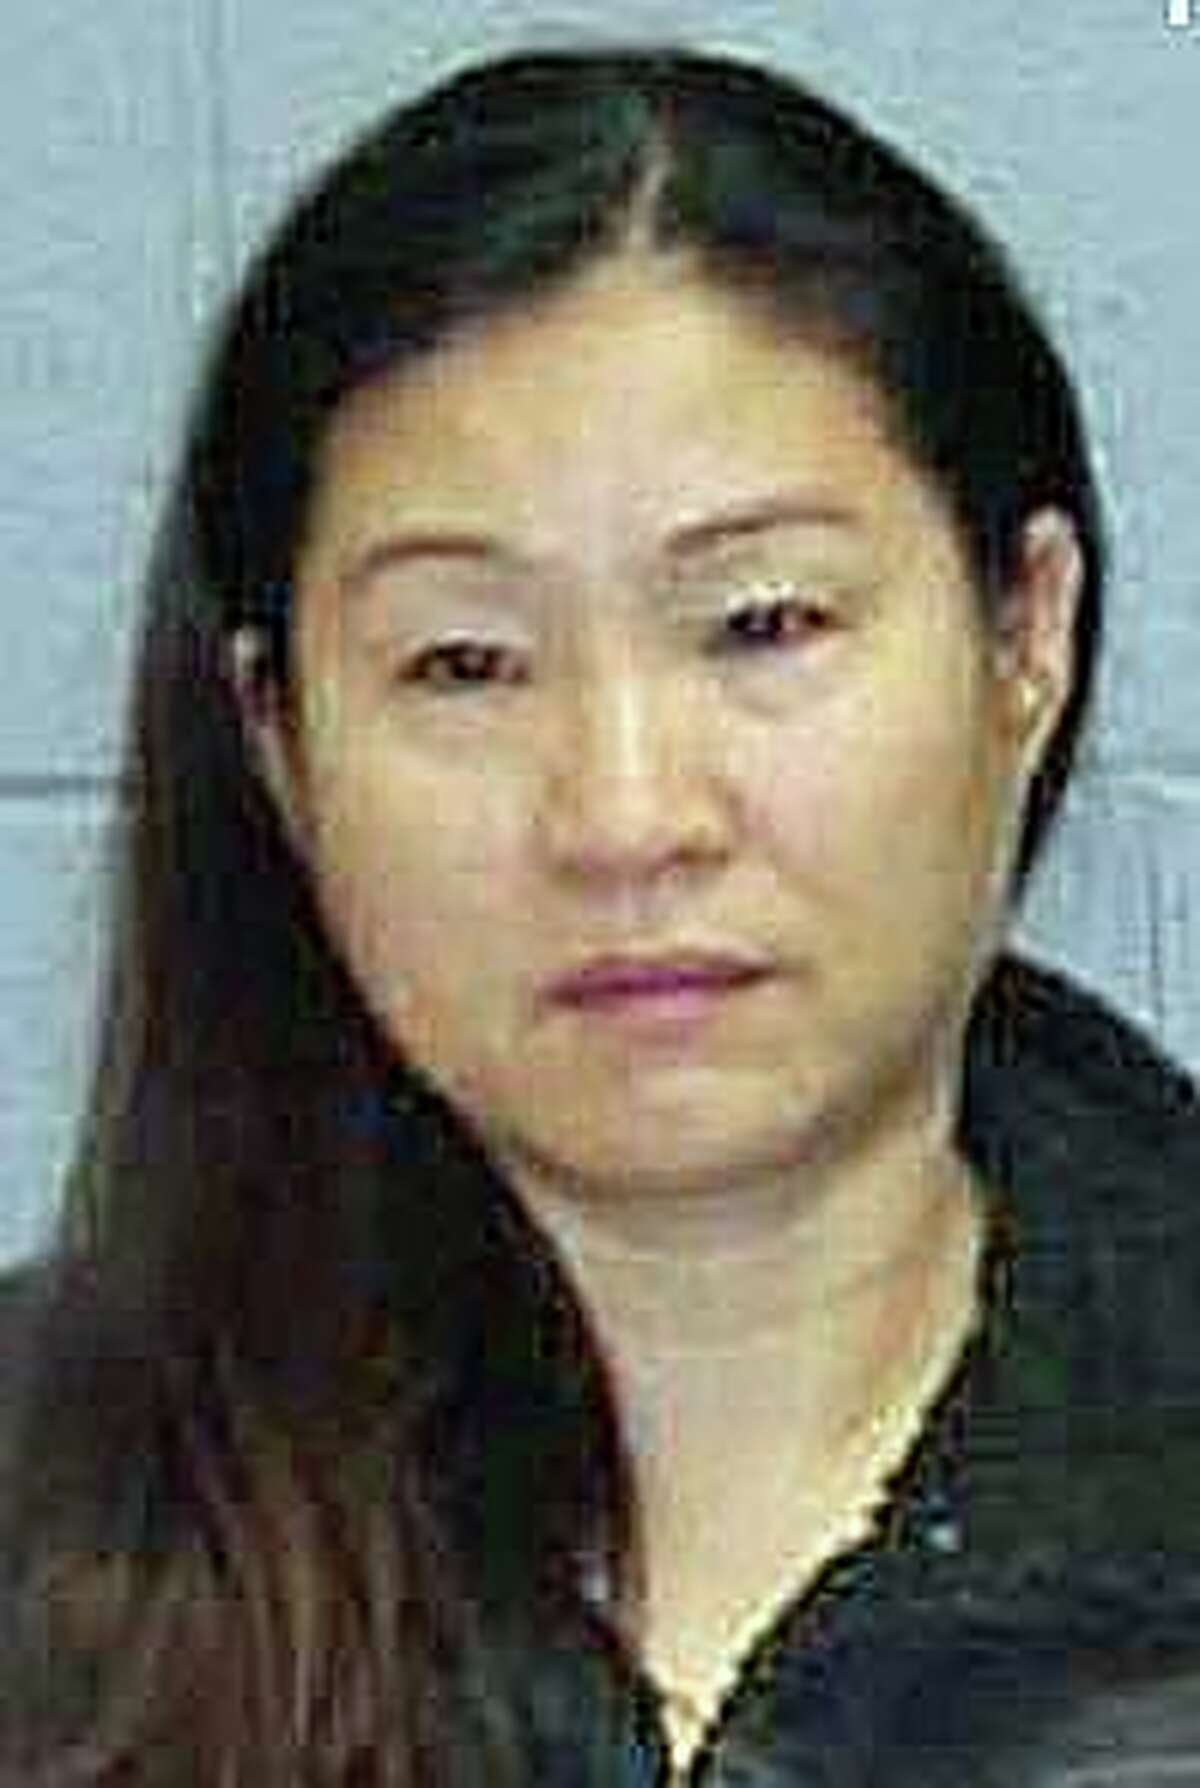 Lijie Zheng, 52, of Hartford, was charged on Oct. 23, 2019 with permitting prostitution and promoting prostitution second-degree.